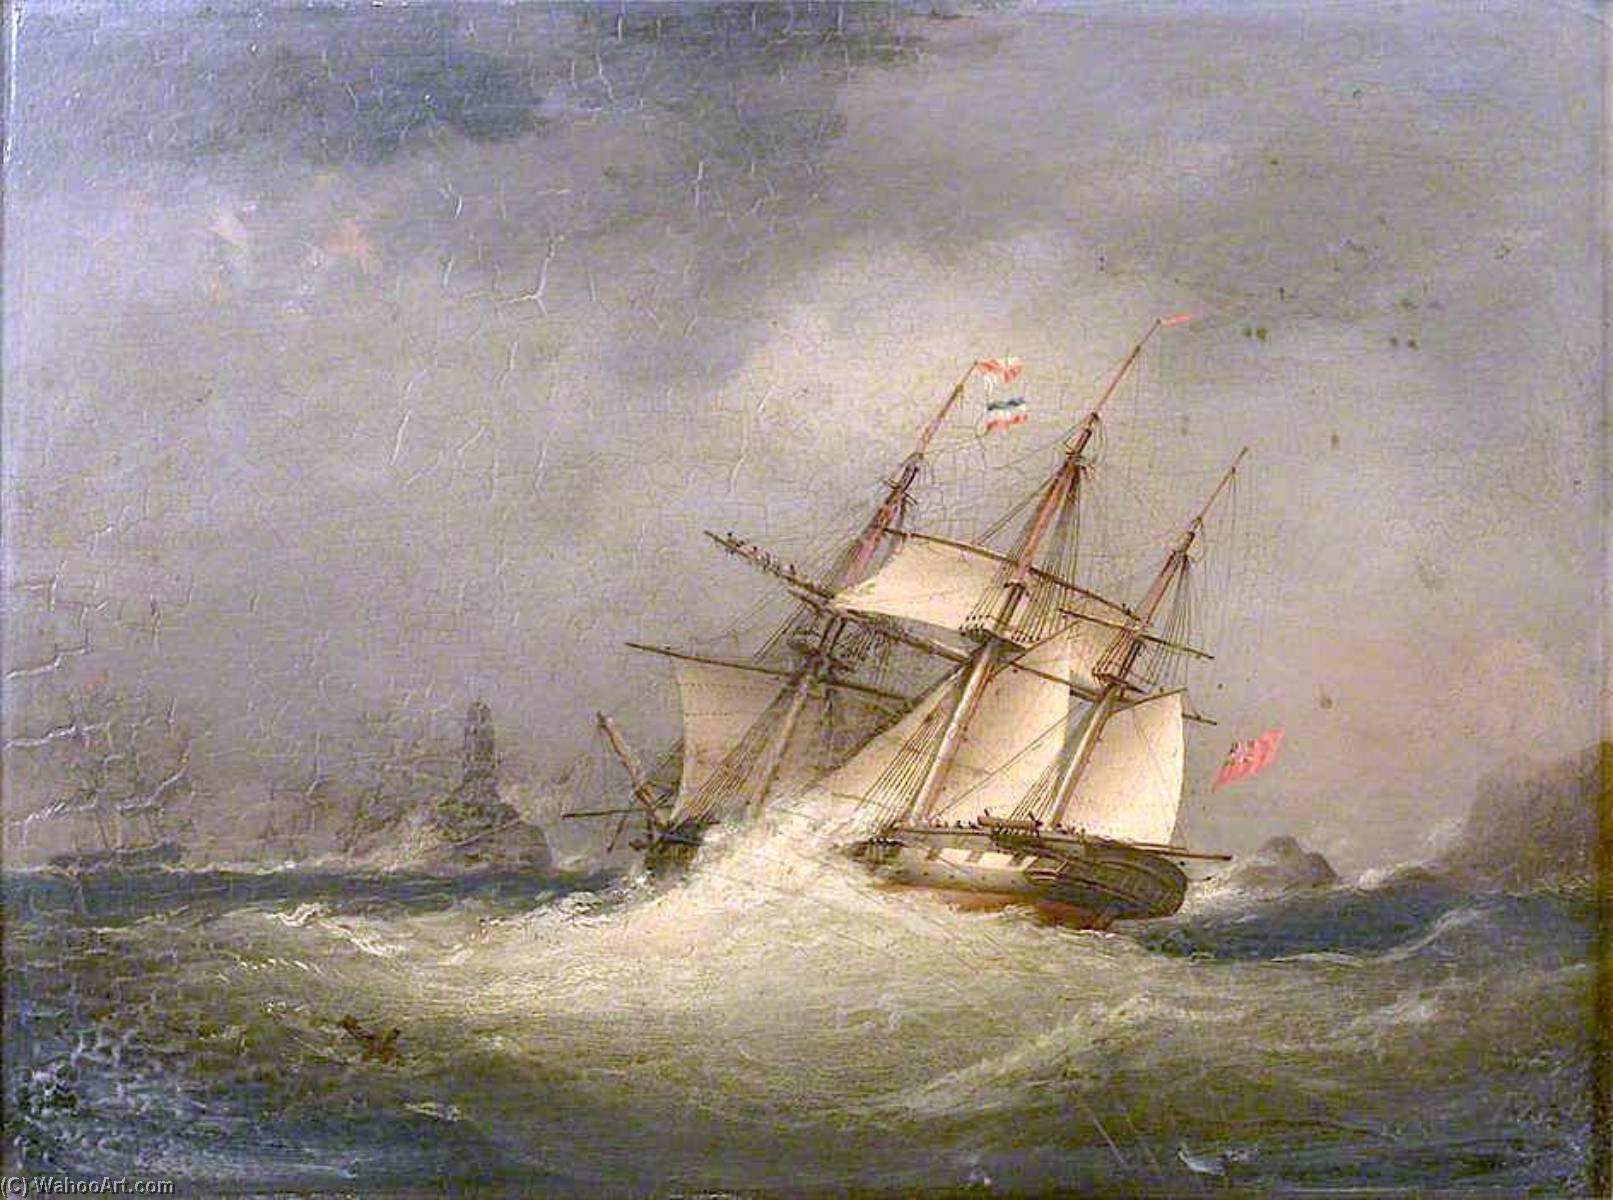 A Frigate off a Rocky Coast by Nicholas Matthew Condy (1816-1851) | Famous Paintings Reproductions | WahooArt.com